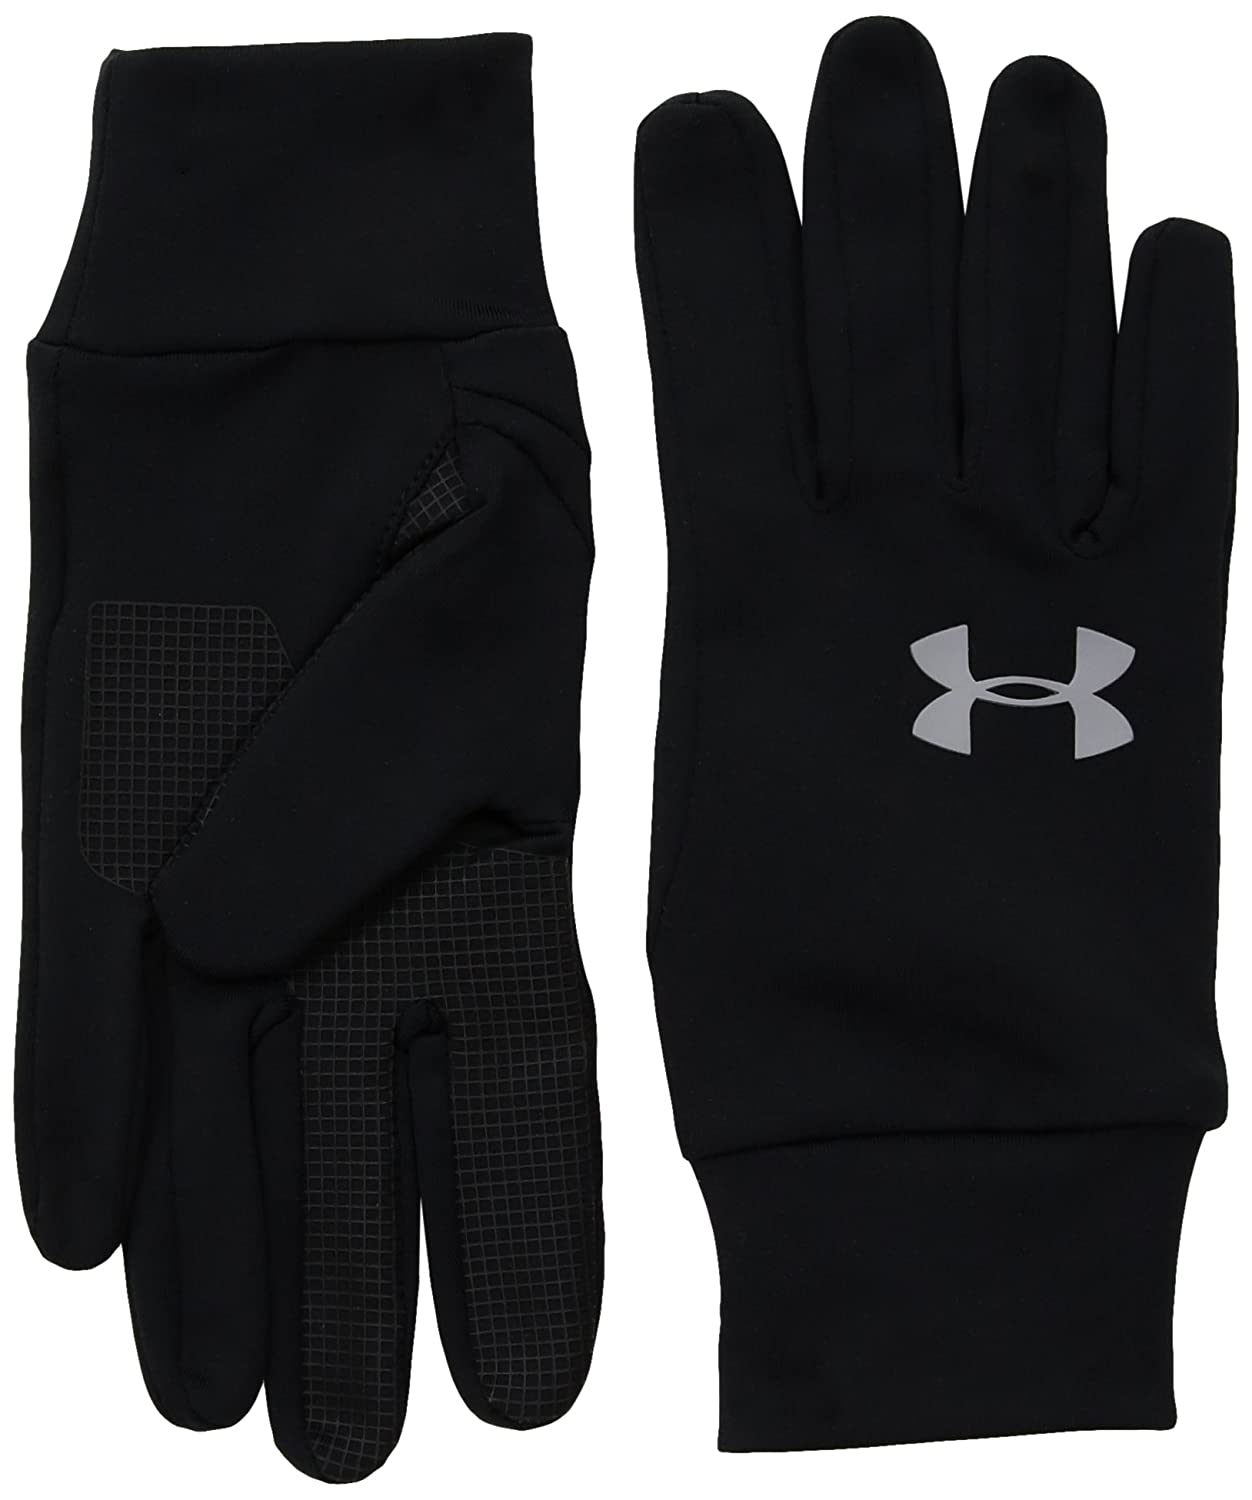 Under Armour Men's Liner ColdGear Storm Water Repellant Glove Under Armour Accessories 1282763